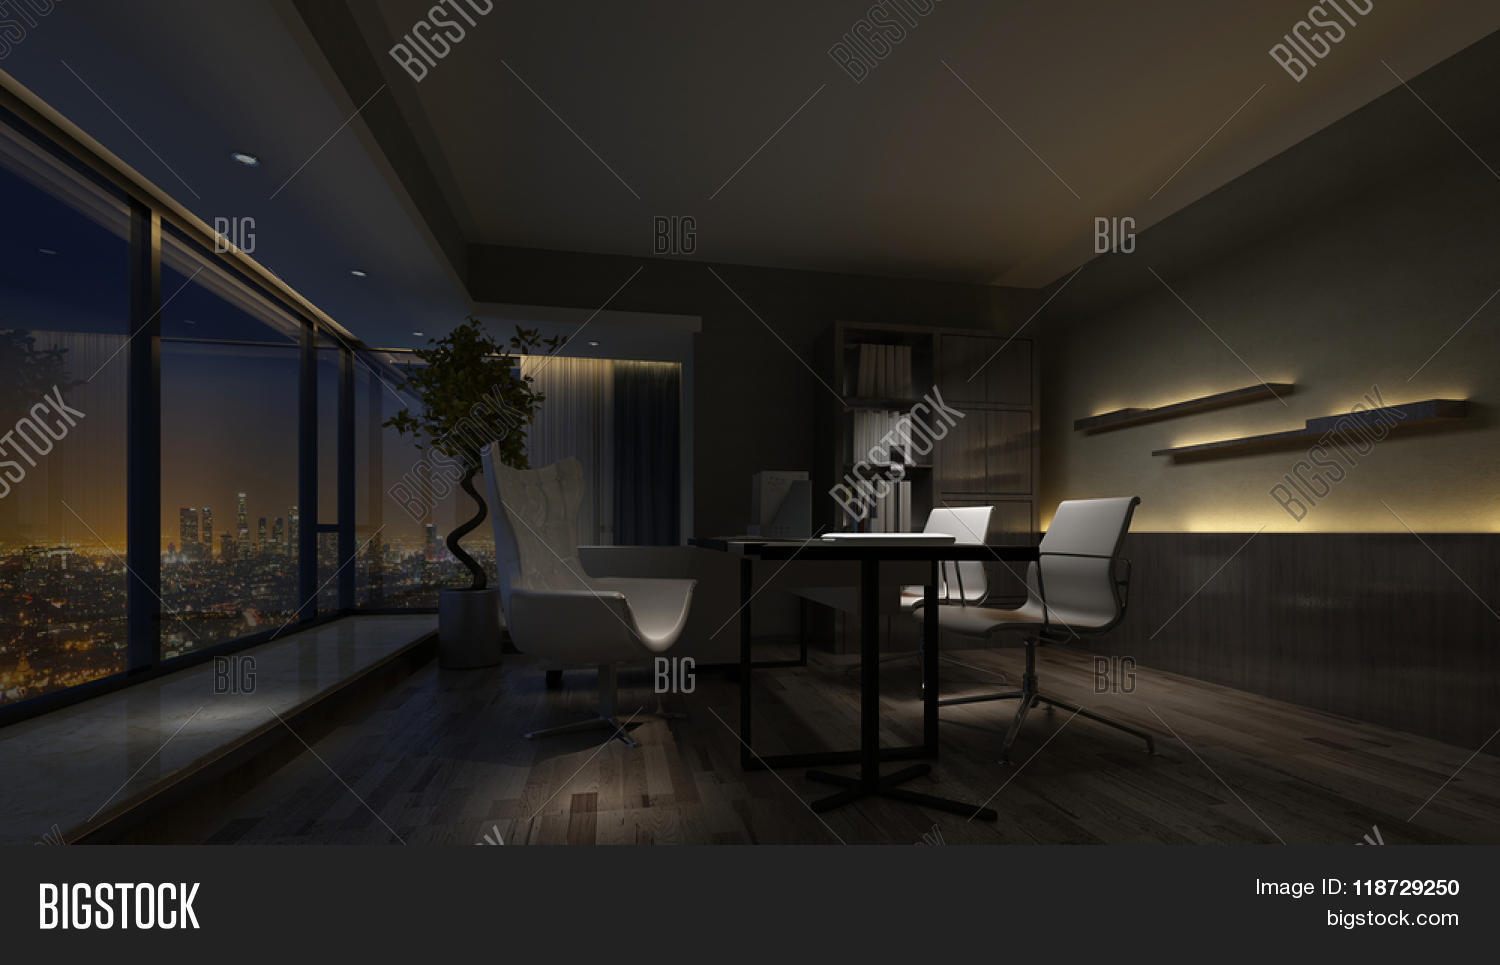 Darkened dimly lit empty interior image photo bigstock for Image city interiors